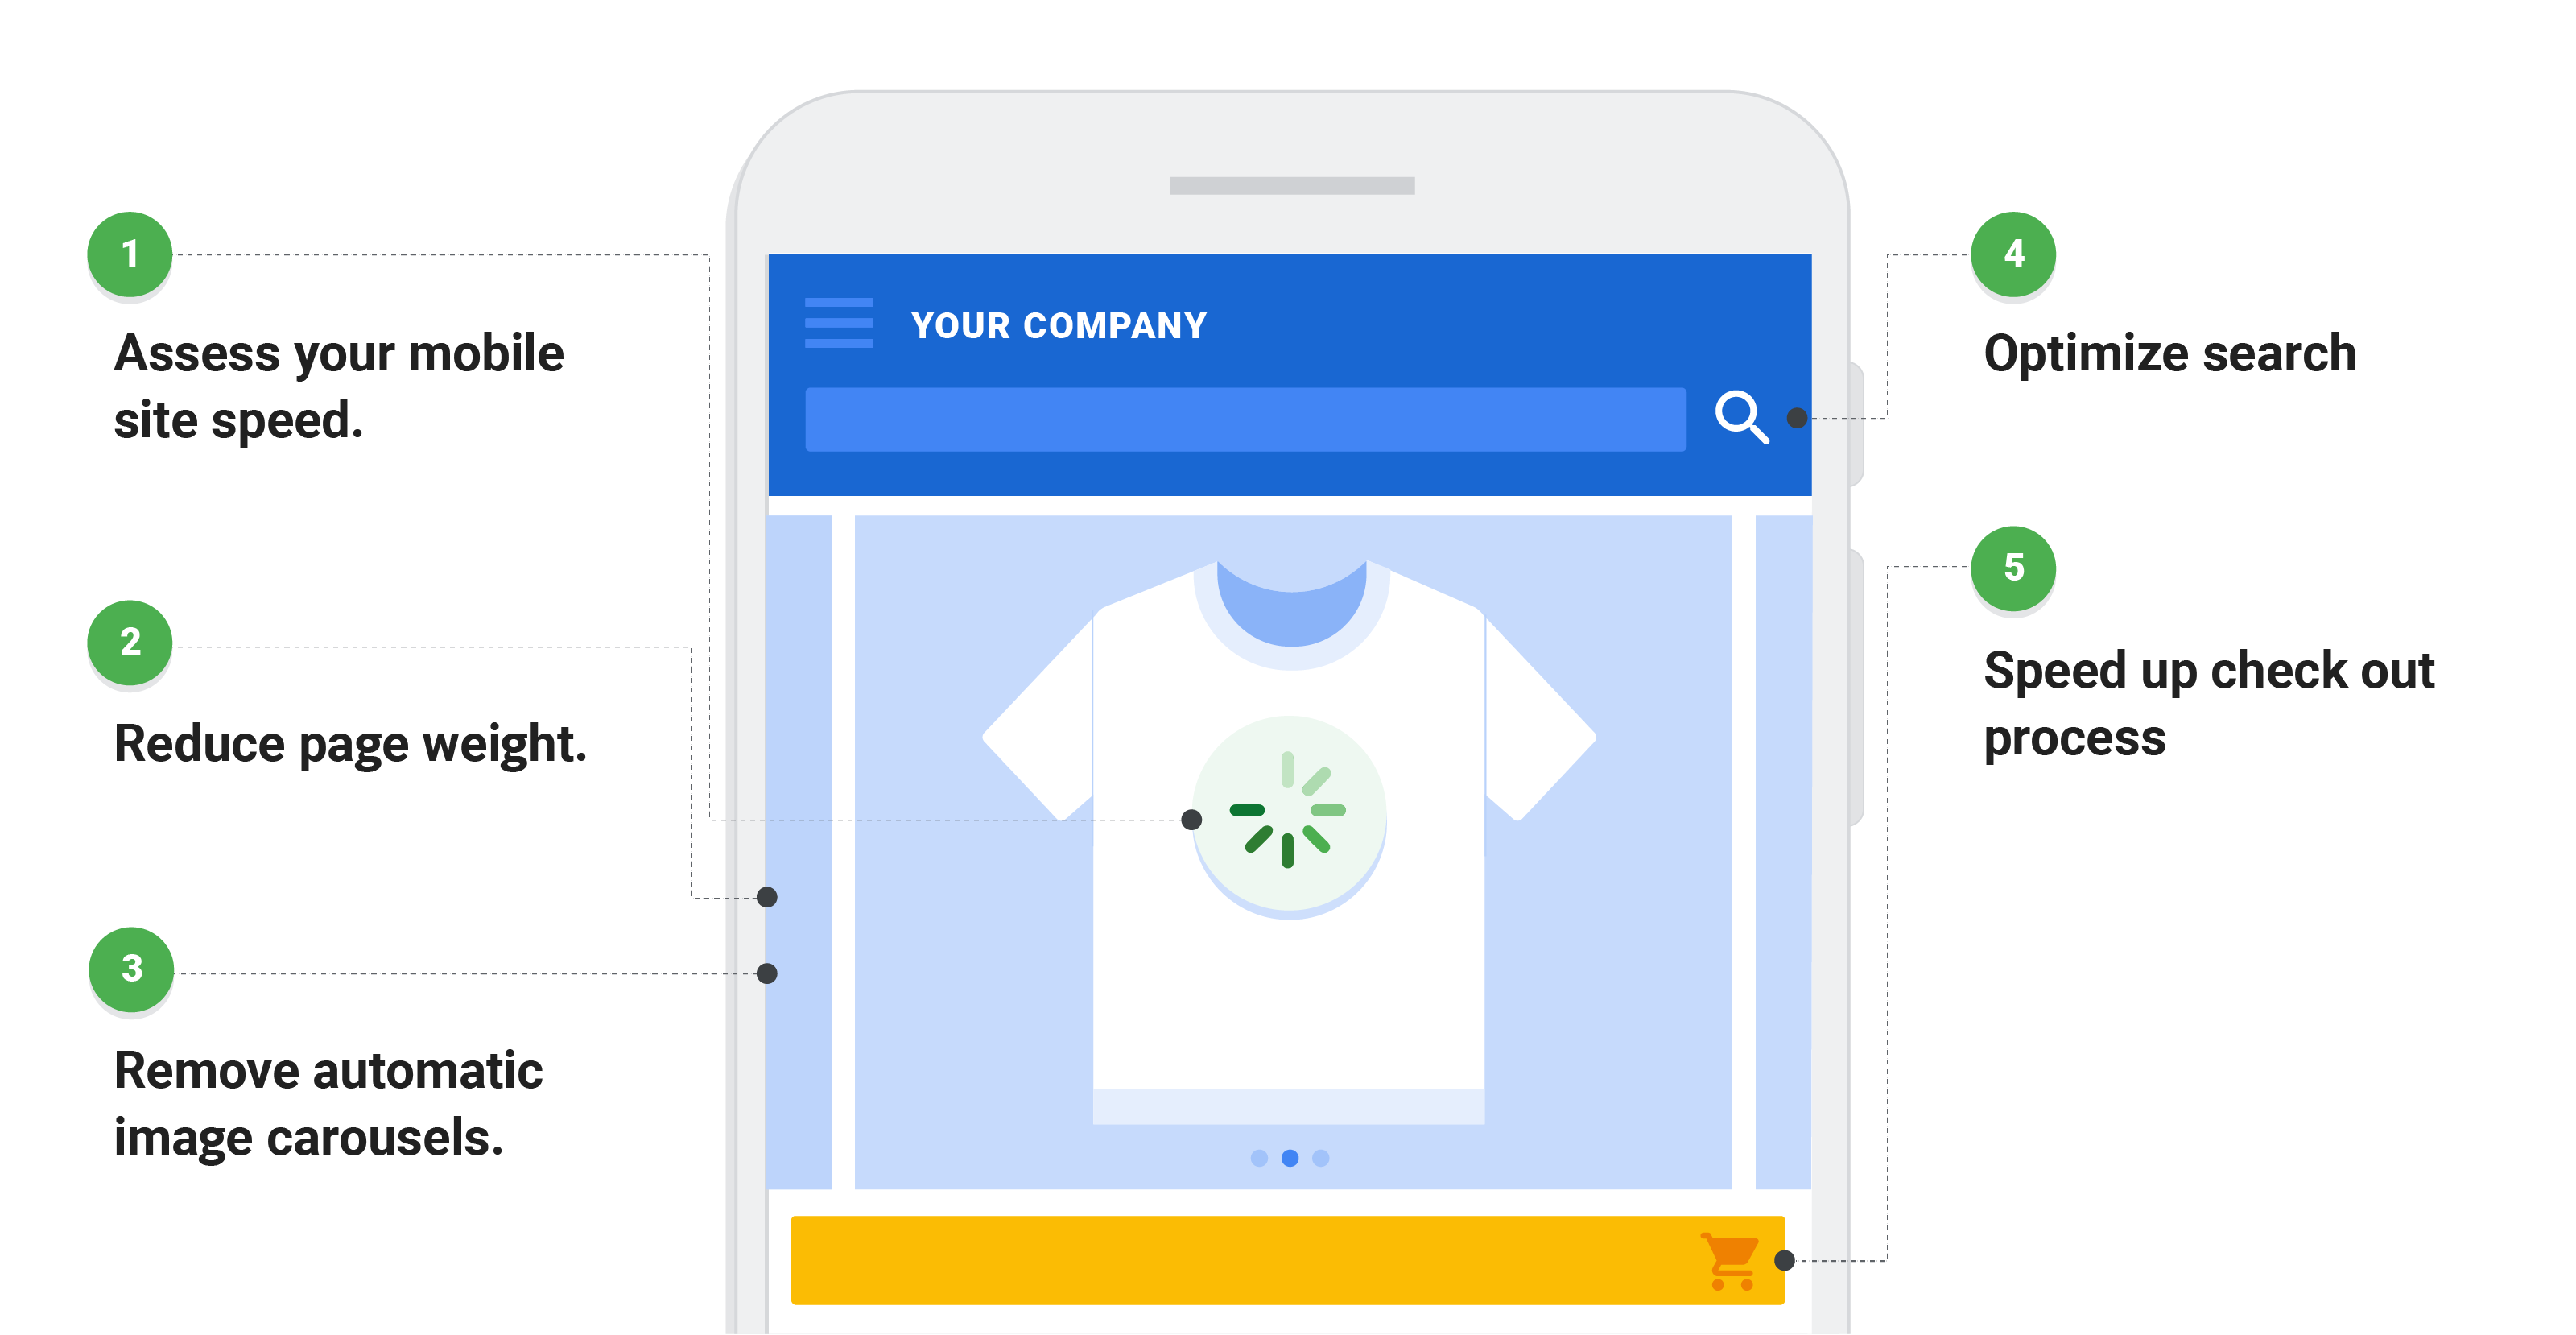 Illustration: A smartphone shows a T-shirt e-commerce site. A green progress wheel shows slow site loading. Text: 1. Assess your mobile speed. 2. Reduce page weight. 3. Remove automatic image carousels. 4. Optimize search. 5. Speed up check out process.